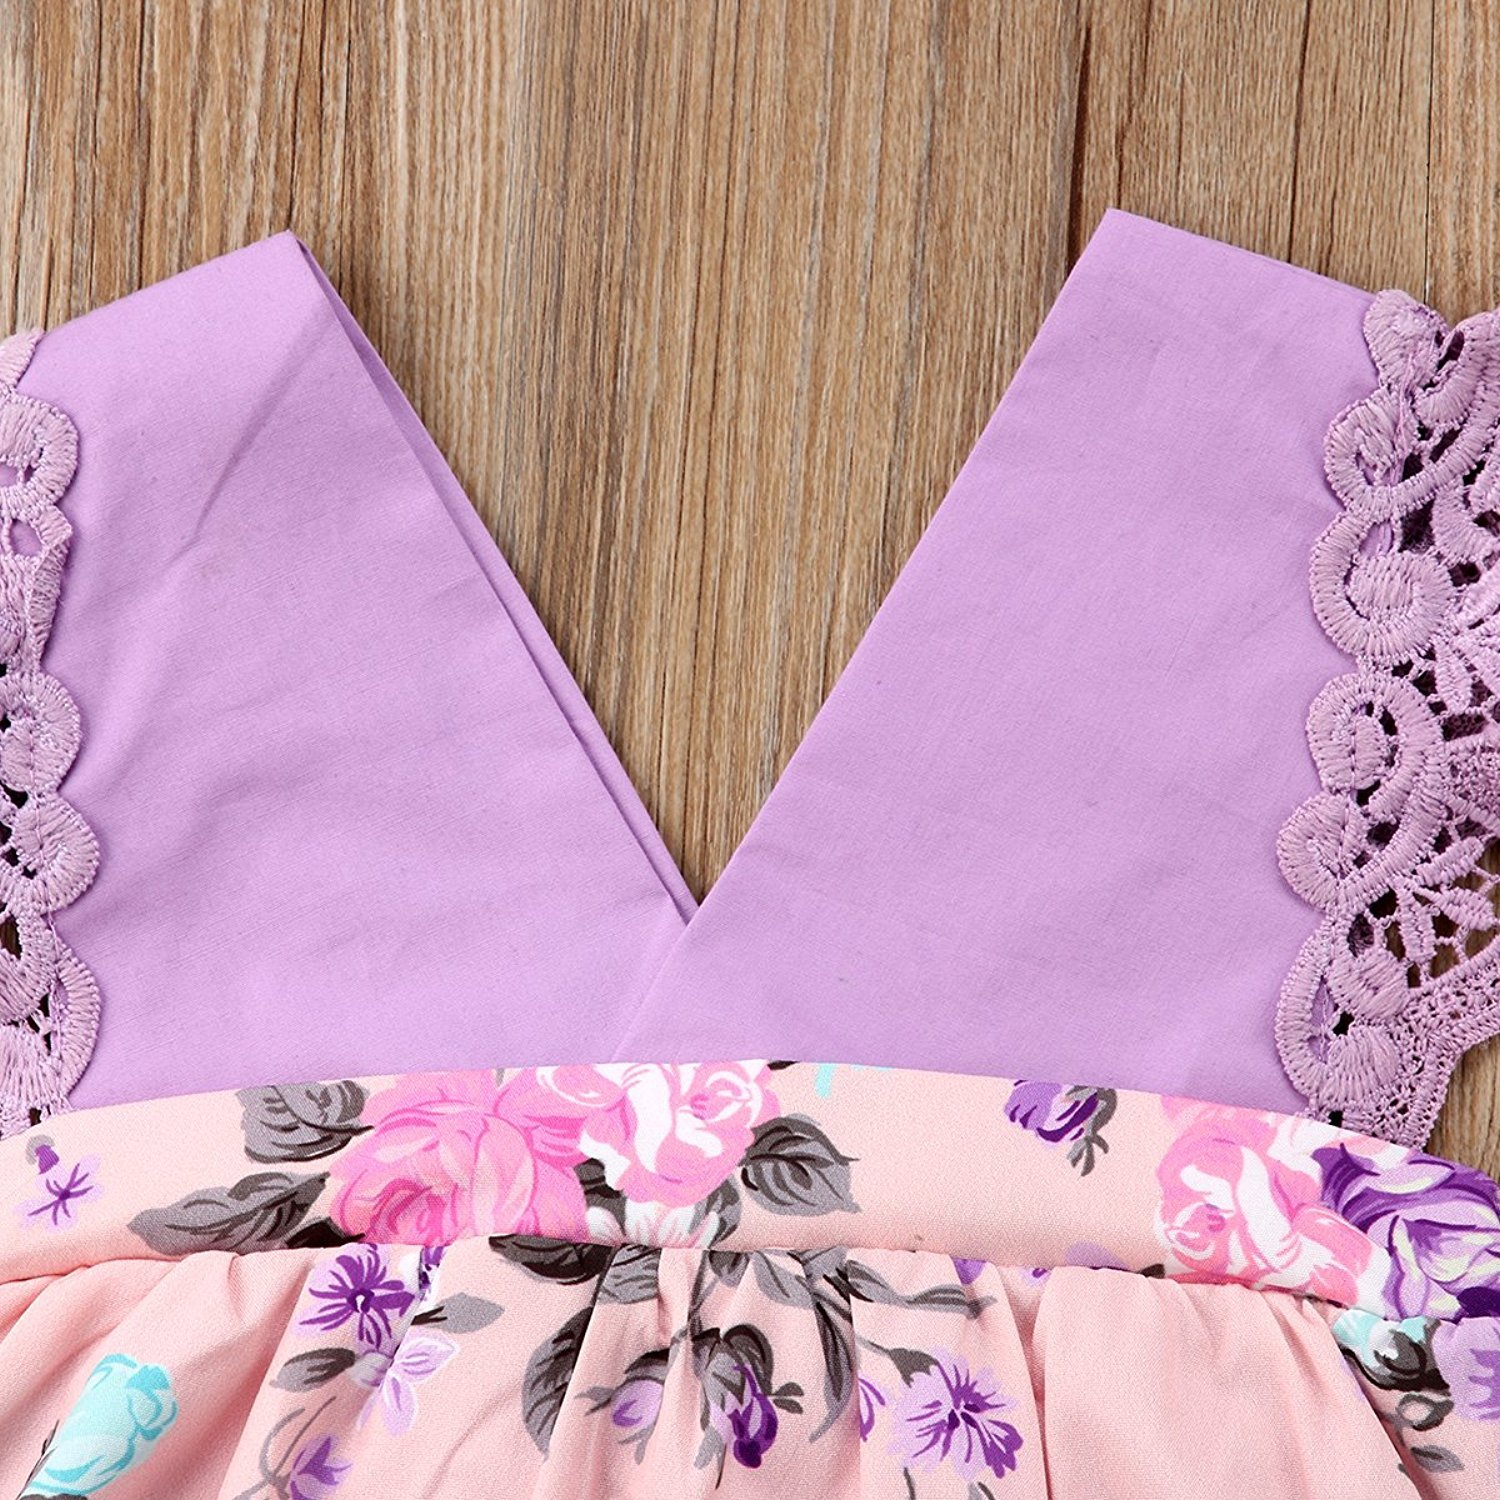 HappyMA Toddler Baby Girl Clothes Floral Dress Lace Ruffle Sleeveless Backless Skirt with Headband 2Pcs Outfit (Purple, 12-18 Months) by HappyMA (Image #4)